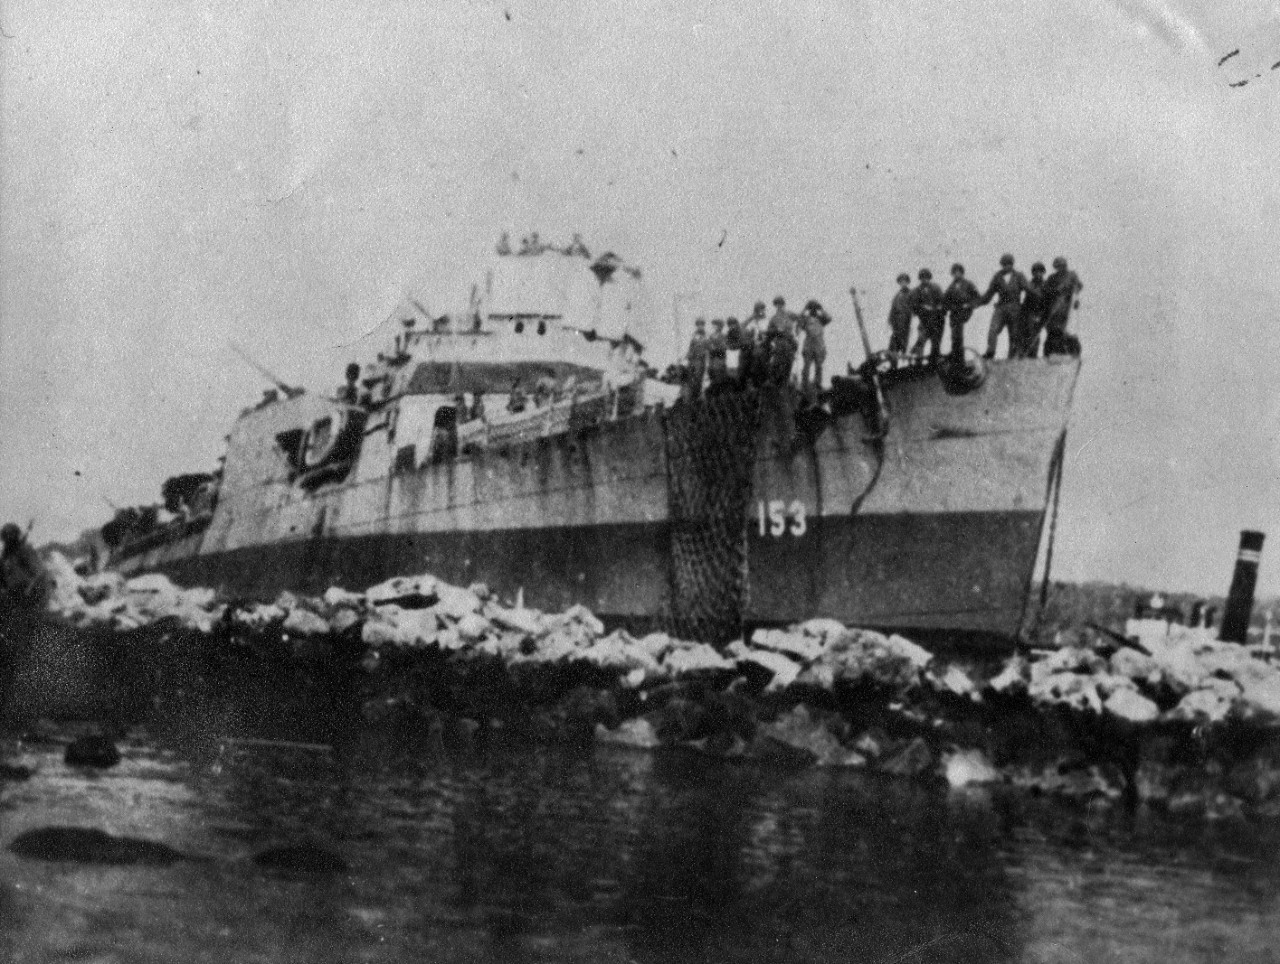 USS Bernadou (DD-153) after landing operations at Safi, French Morocco during Operation Torch landings, November 1942. The destroyer had been modified to land troops in the invasion.